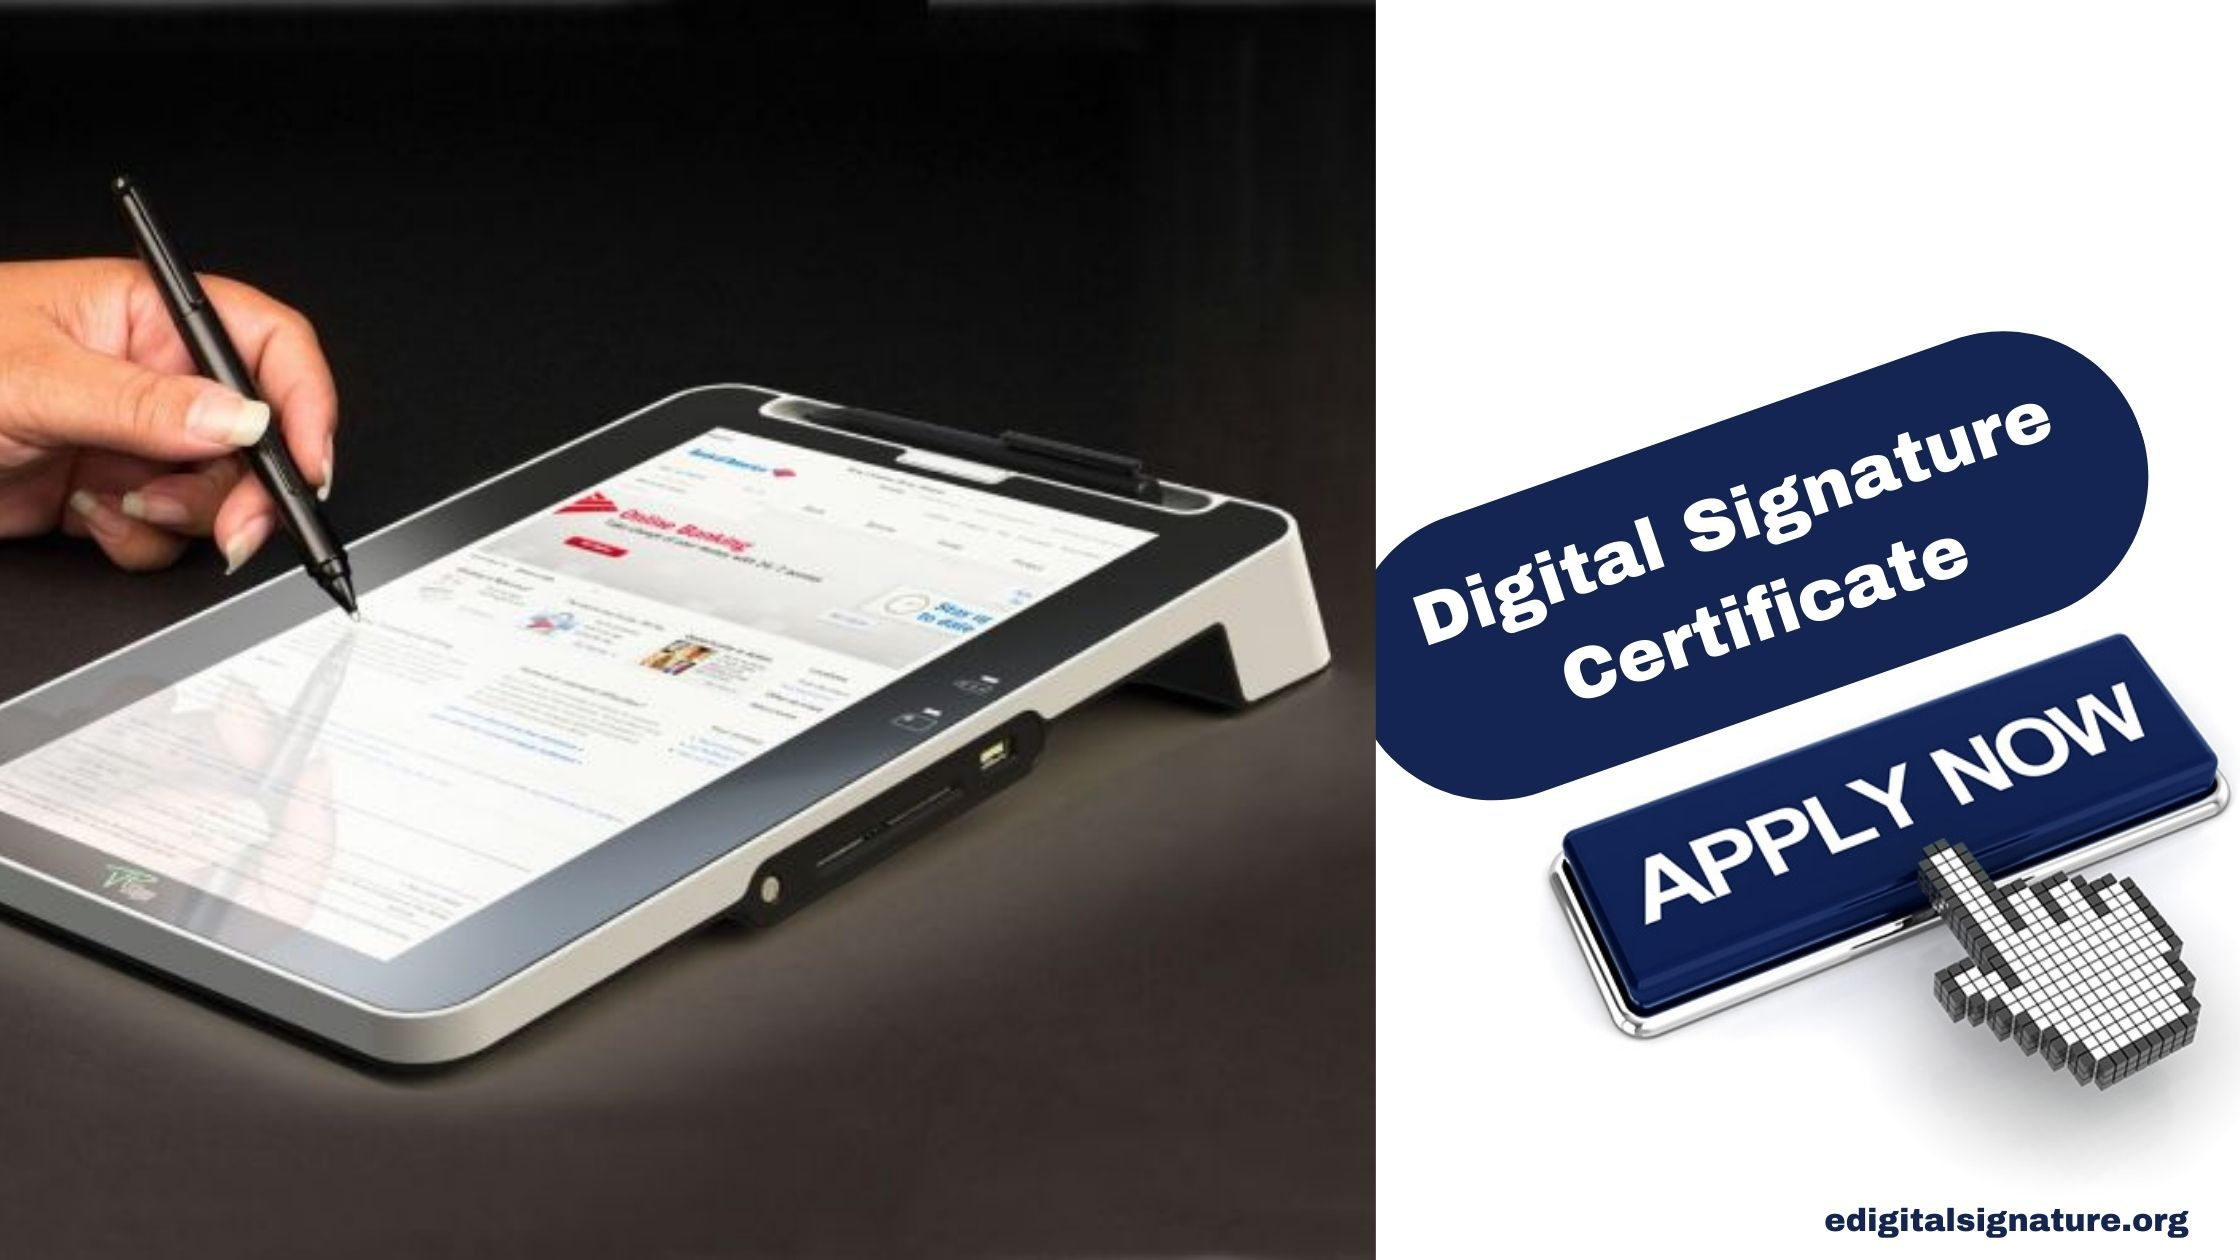 How to Apply for Digital Signature Certificate Online